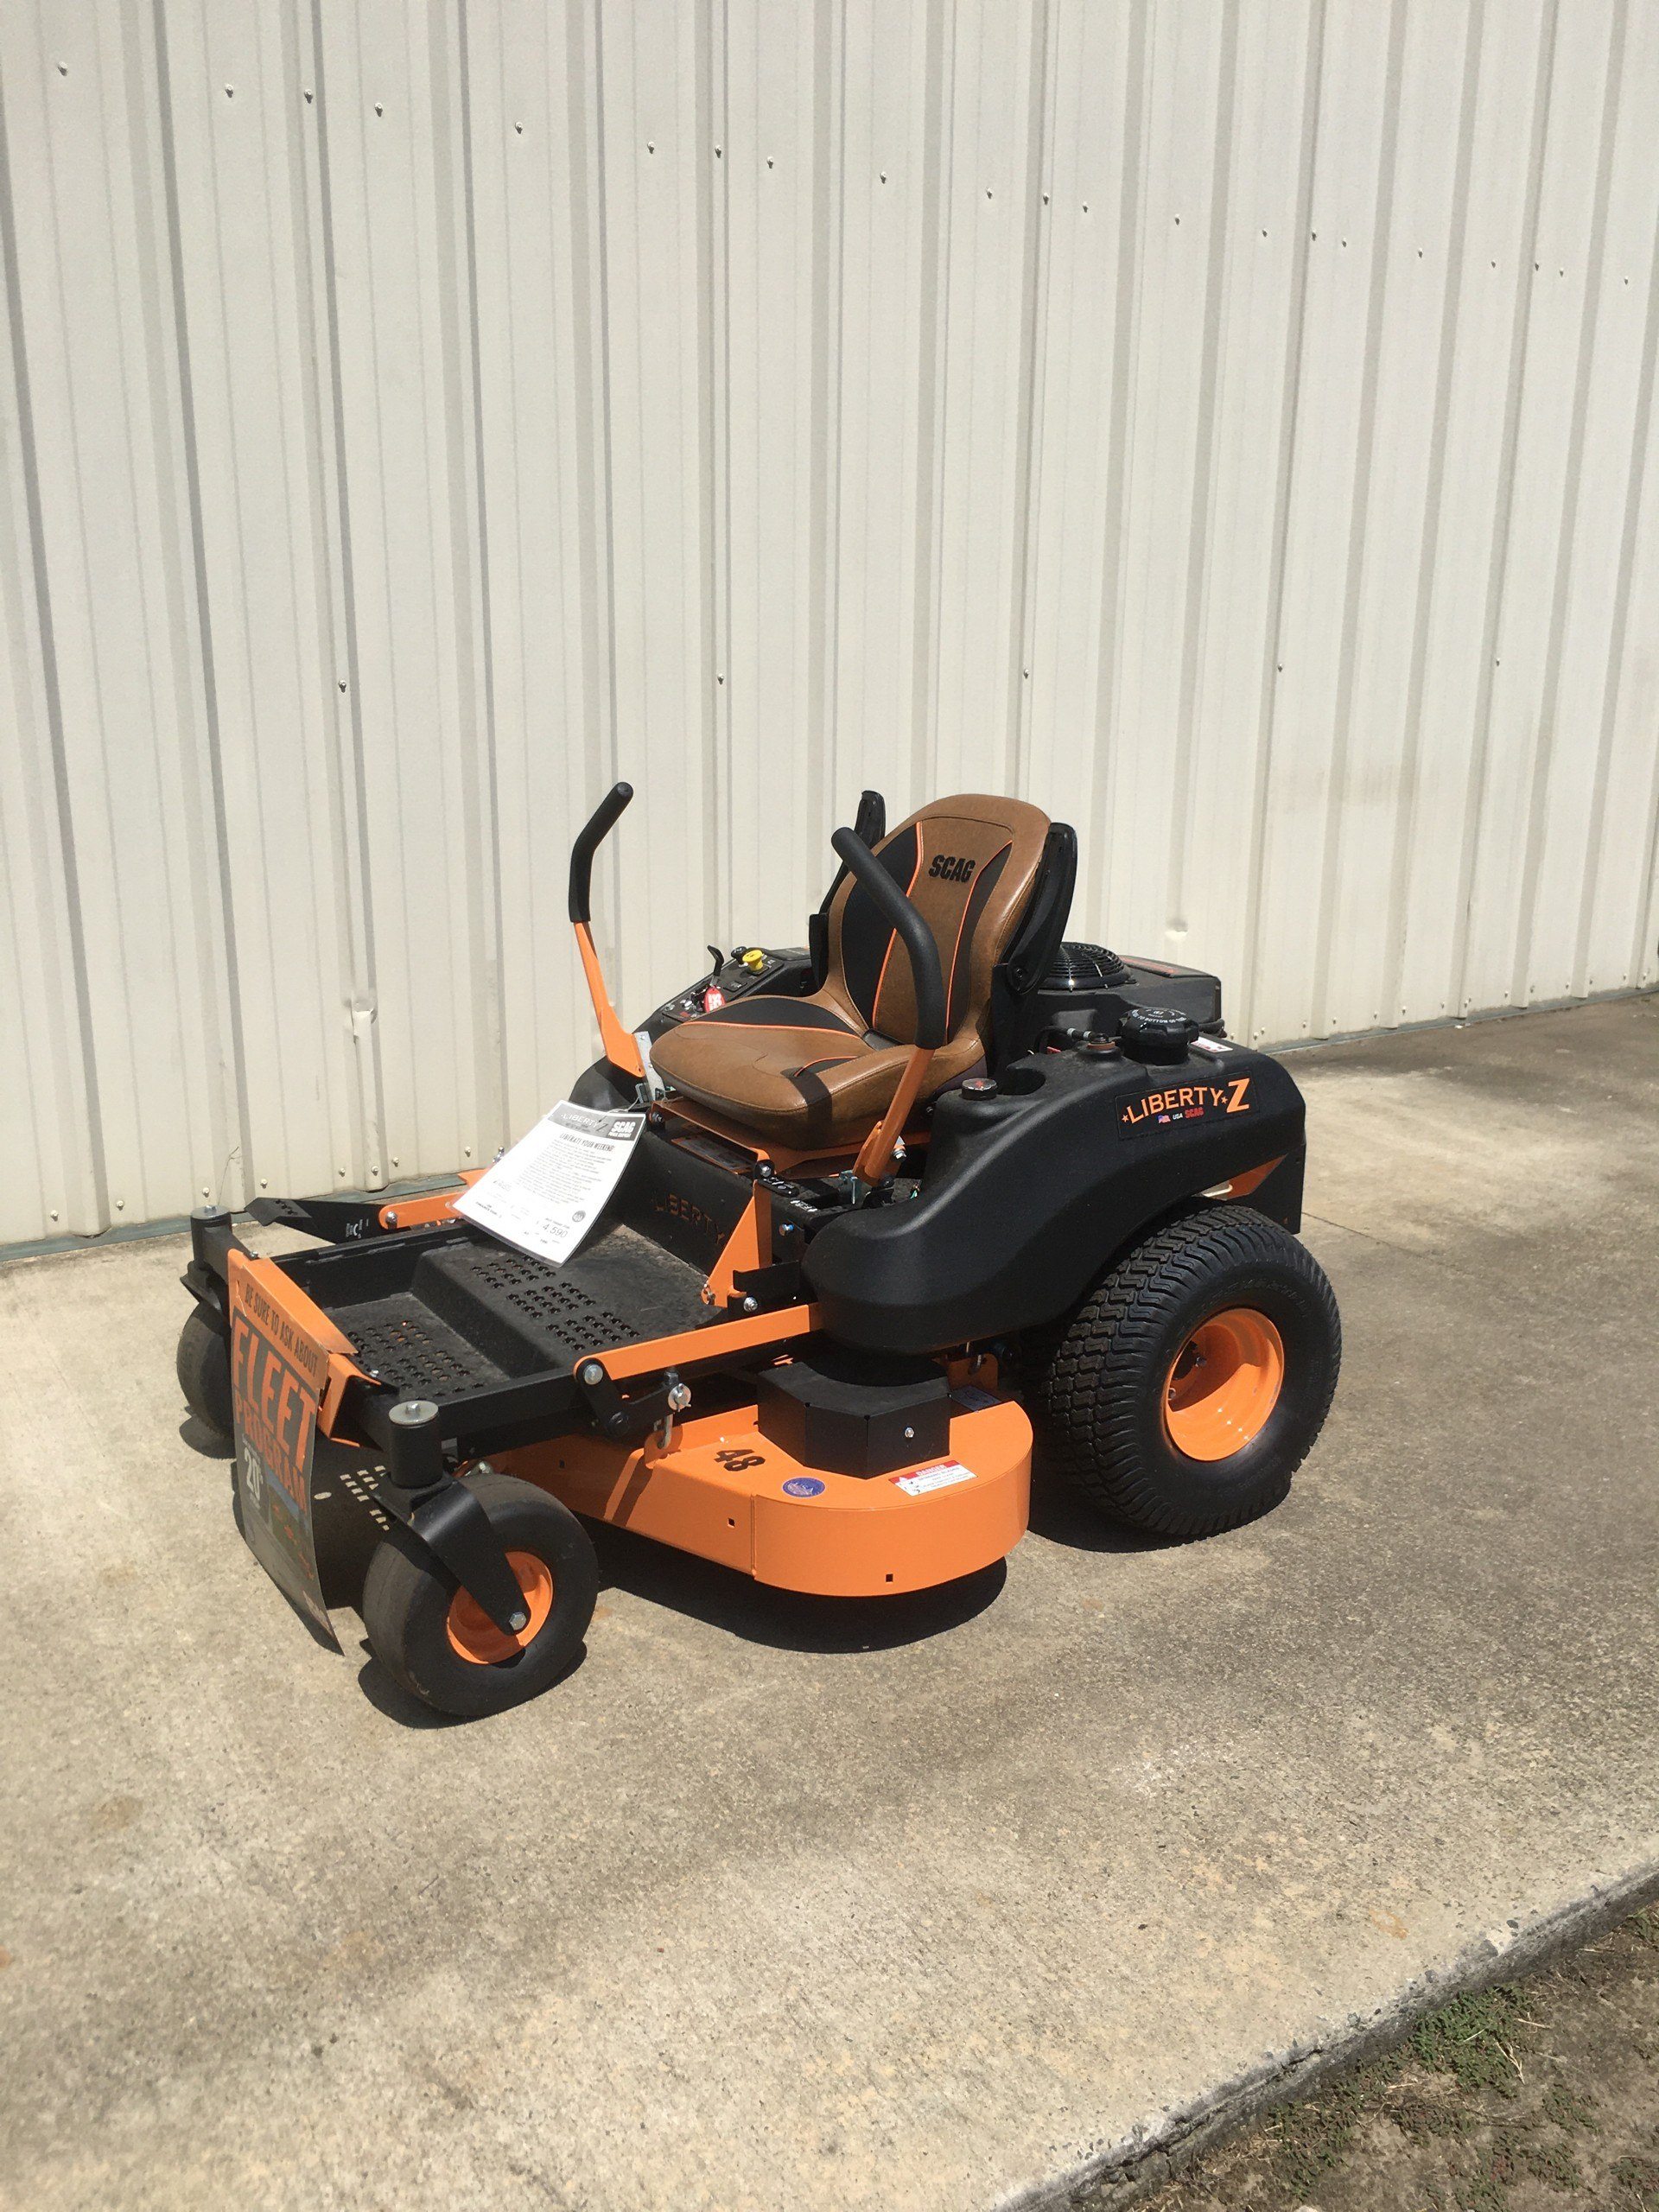 2020 SCAG Power Equipment Liberty Z 48 in. Kawasaki 21 hp in Tifton, Georgia - Photo 1